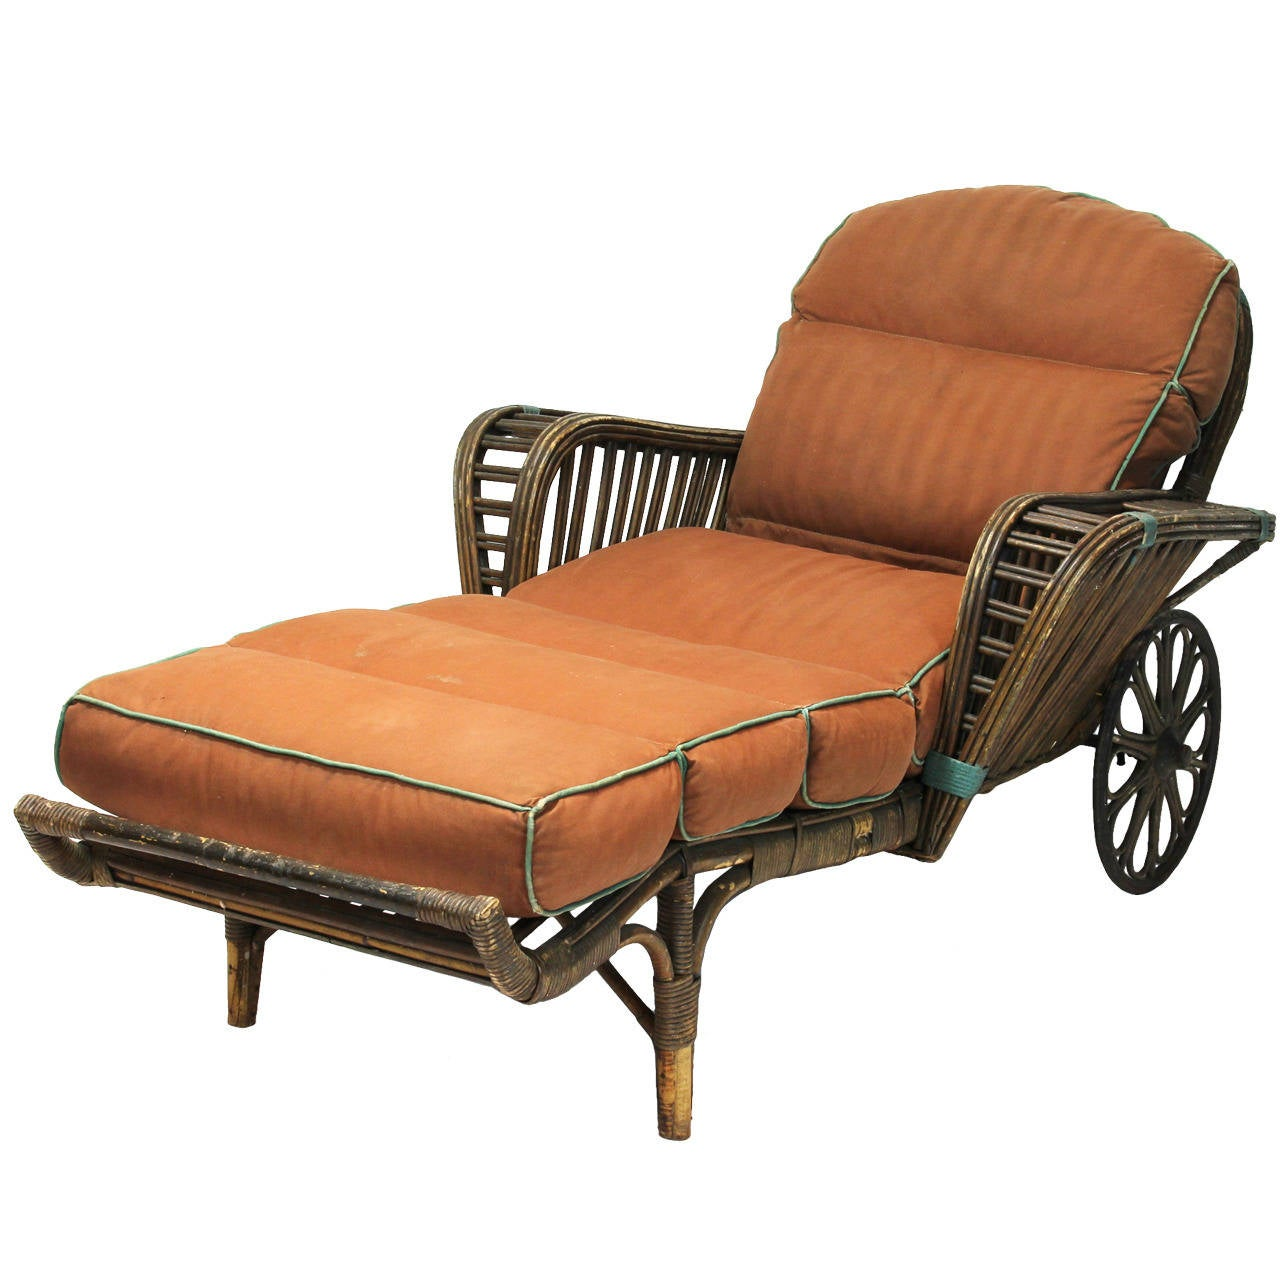 Antique stick wicker chaise at 1stdibs for Chaise antique furniture